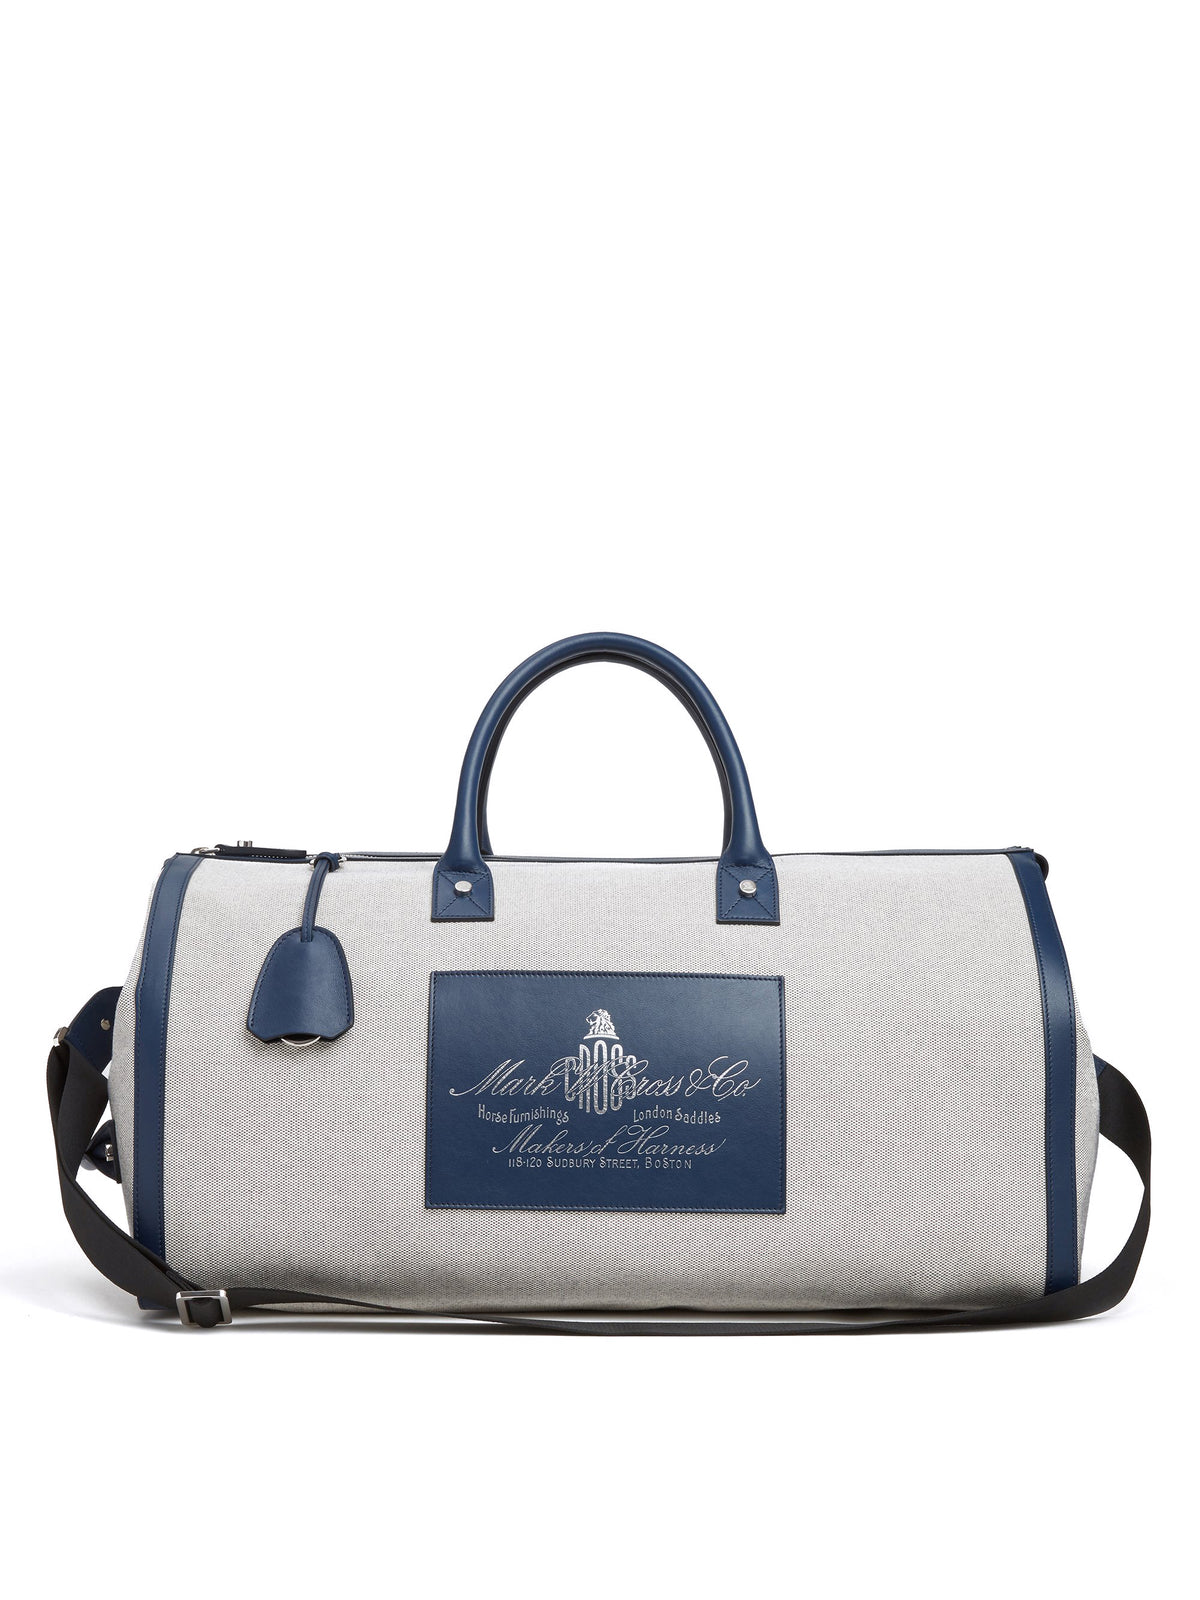 Mark Cross Equestrian Historical Logo Duffle Bag Soft Calf Navy / Birdseye Front